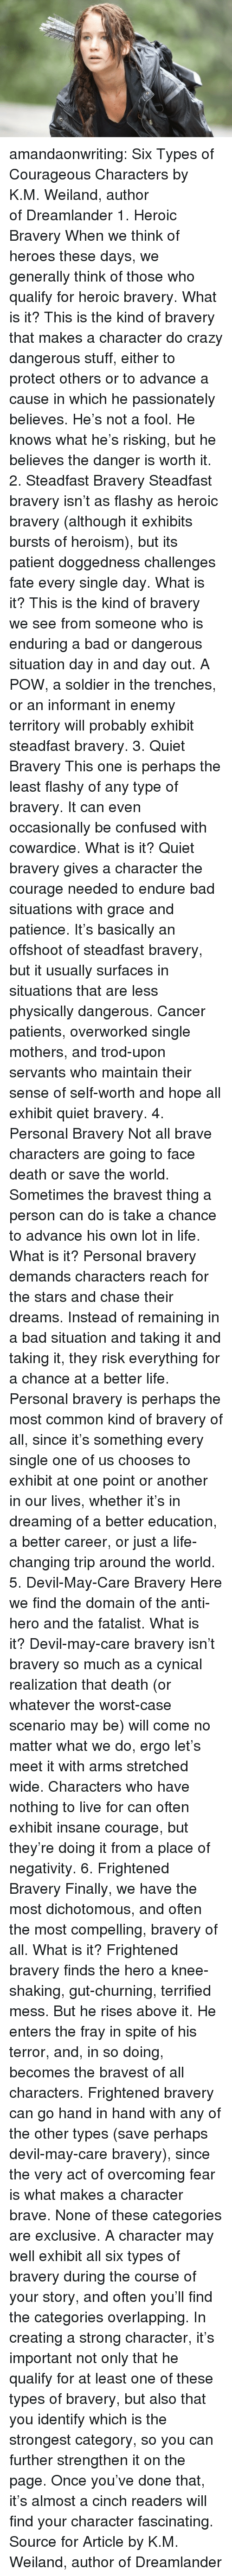 the fray: amandaonwriting:  Six Types of Courageous Characters by K.M. Weiland,author ofDreamlander 1. Heroic Bravery When we think of heroes these days, we generally think of those who qualify for heroic bravery. What is it?This is the kind of bravery that makes a character do crazy dangerous stuff, either to protect others or to advance a cause in which he passionately believes. He's not a fool. He knows what he's risking, but he believes the danger is worth it. 2. Steadfast Bravery Steadfast bravery isn't as flashy as heroic bravery (although it exhibits bursts of heroism), but its patient doggedness challenges fate every single day. What is it?This is the kind of bravery we see from someone who is enduring a bad or dangerous situation day in and day out. A POW, a soldier in the trenches, or an informant in enemy territory will probably exhibit steadfast bravery. 3. Quiet Bravery This one is perhaps the least flashy of any type of bravery. It can even occasionally be confused with cowardice. What is it?Quiet bravery gives a character the courage needed to endure bad situations with grace and patience. It's basically an offshoot of steadfast bravery, but it usually surfaces in situations that are less physically dangerous. Cancer patients, overworked single mothers, and trod-upon servants who maintain their sense of self-worth and hope all exhibit quiet bravery. 4. Personal Bravery Not all brave characters are going to face death or save the world. Sometimes the bravest thing a person can do is take a chance to advance his own lot in life. What is it?Personal bravery demands characters reach for the stars and chase their dreams. Instead of remaining in a bad situation and taking it and taking it, they risk everything for a chance at a better life. Personal bravery is perhaps the most common kind of bravery of all, since it's something every single one of us chooses to exhibit at one point or another in our lives, whether it's in dreaming of a better education, a b